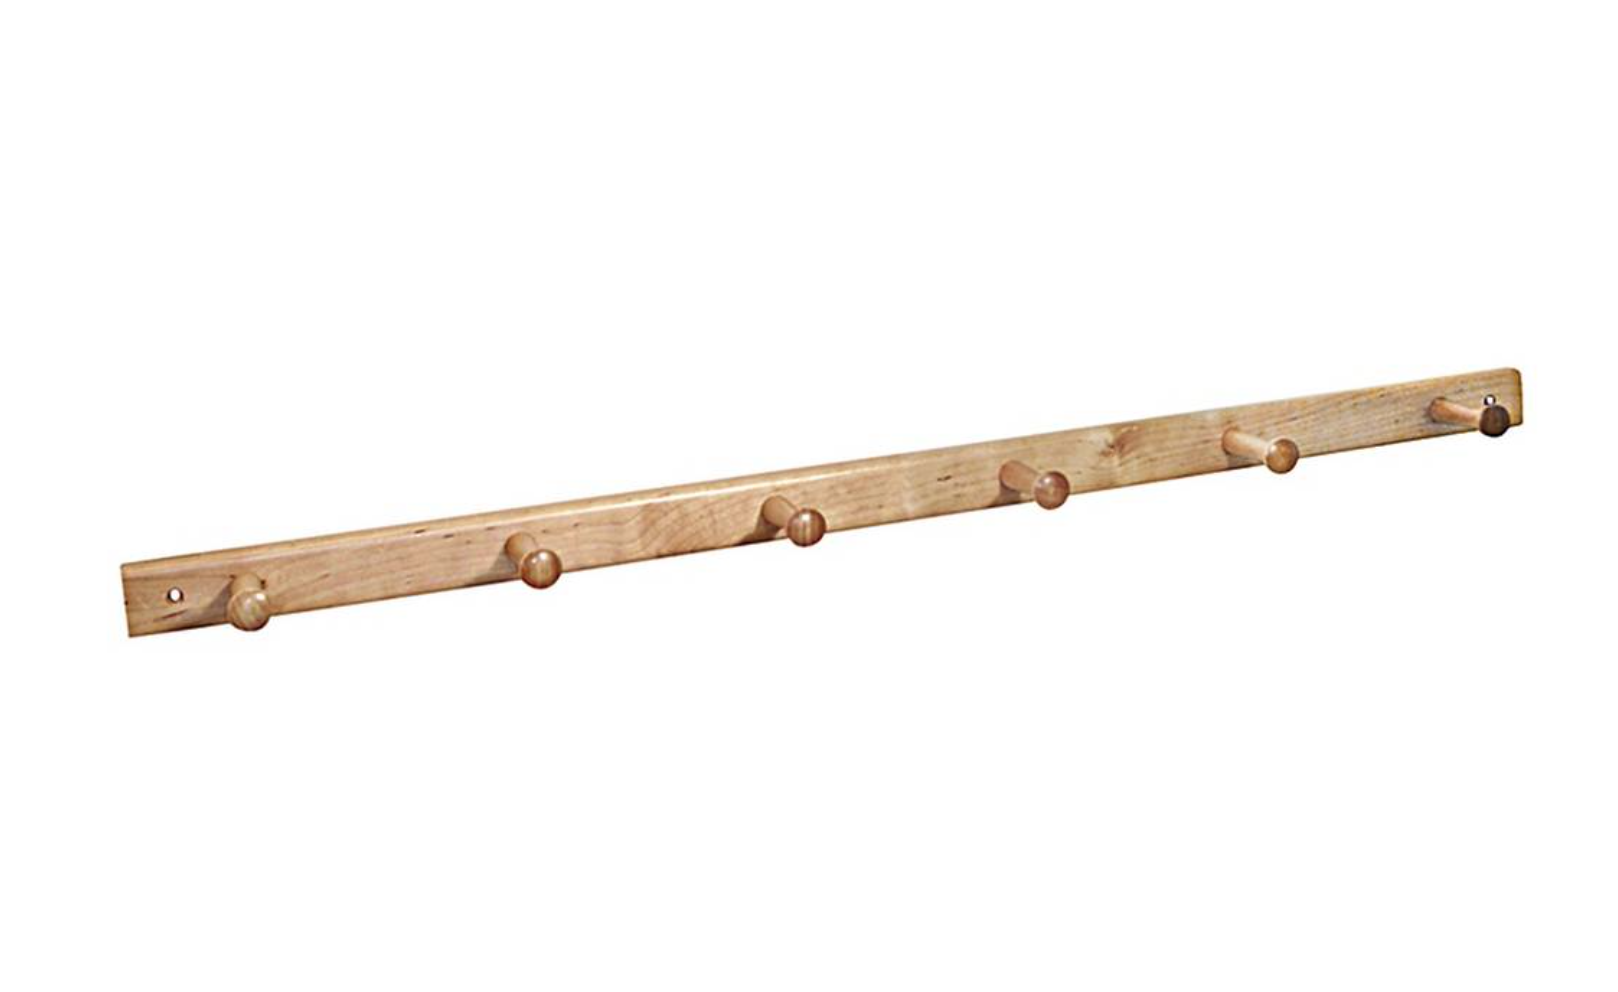 This maple and birch rail by InterDesign has a thin, sleek profile; $.49 at Life & Home or $.59 at Target.